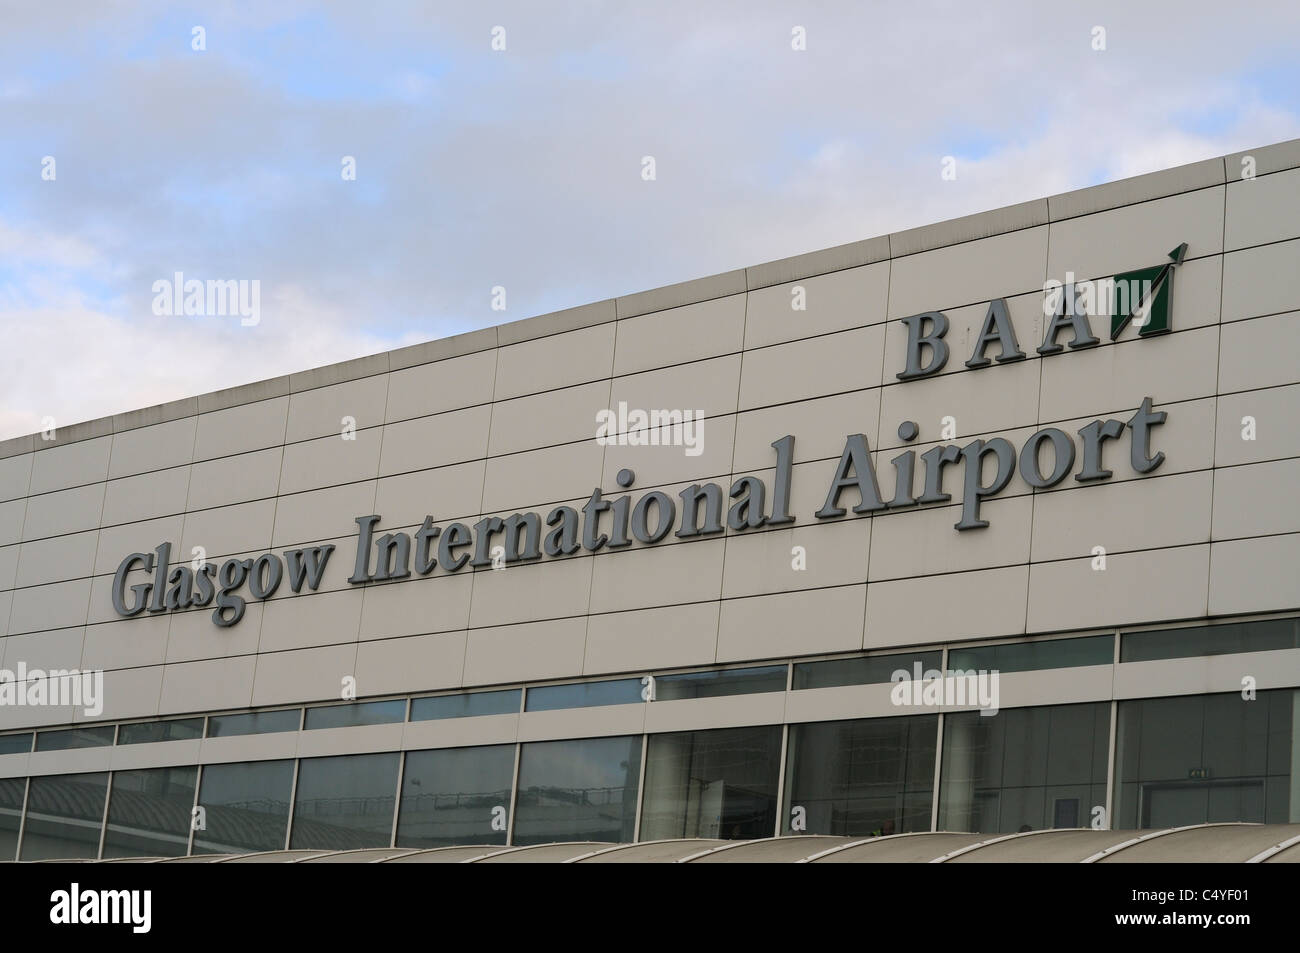 The Exterior Sign For Glasgow International Airport Scotland UK - Stock Image